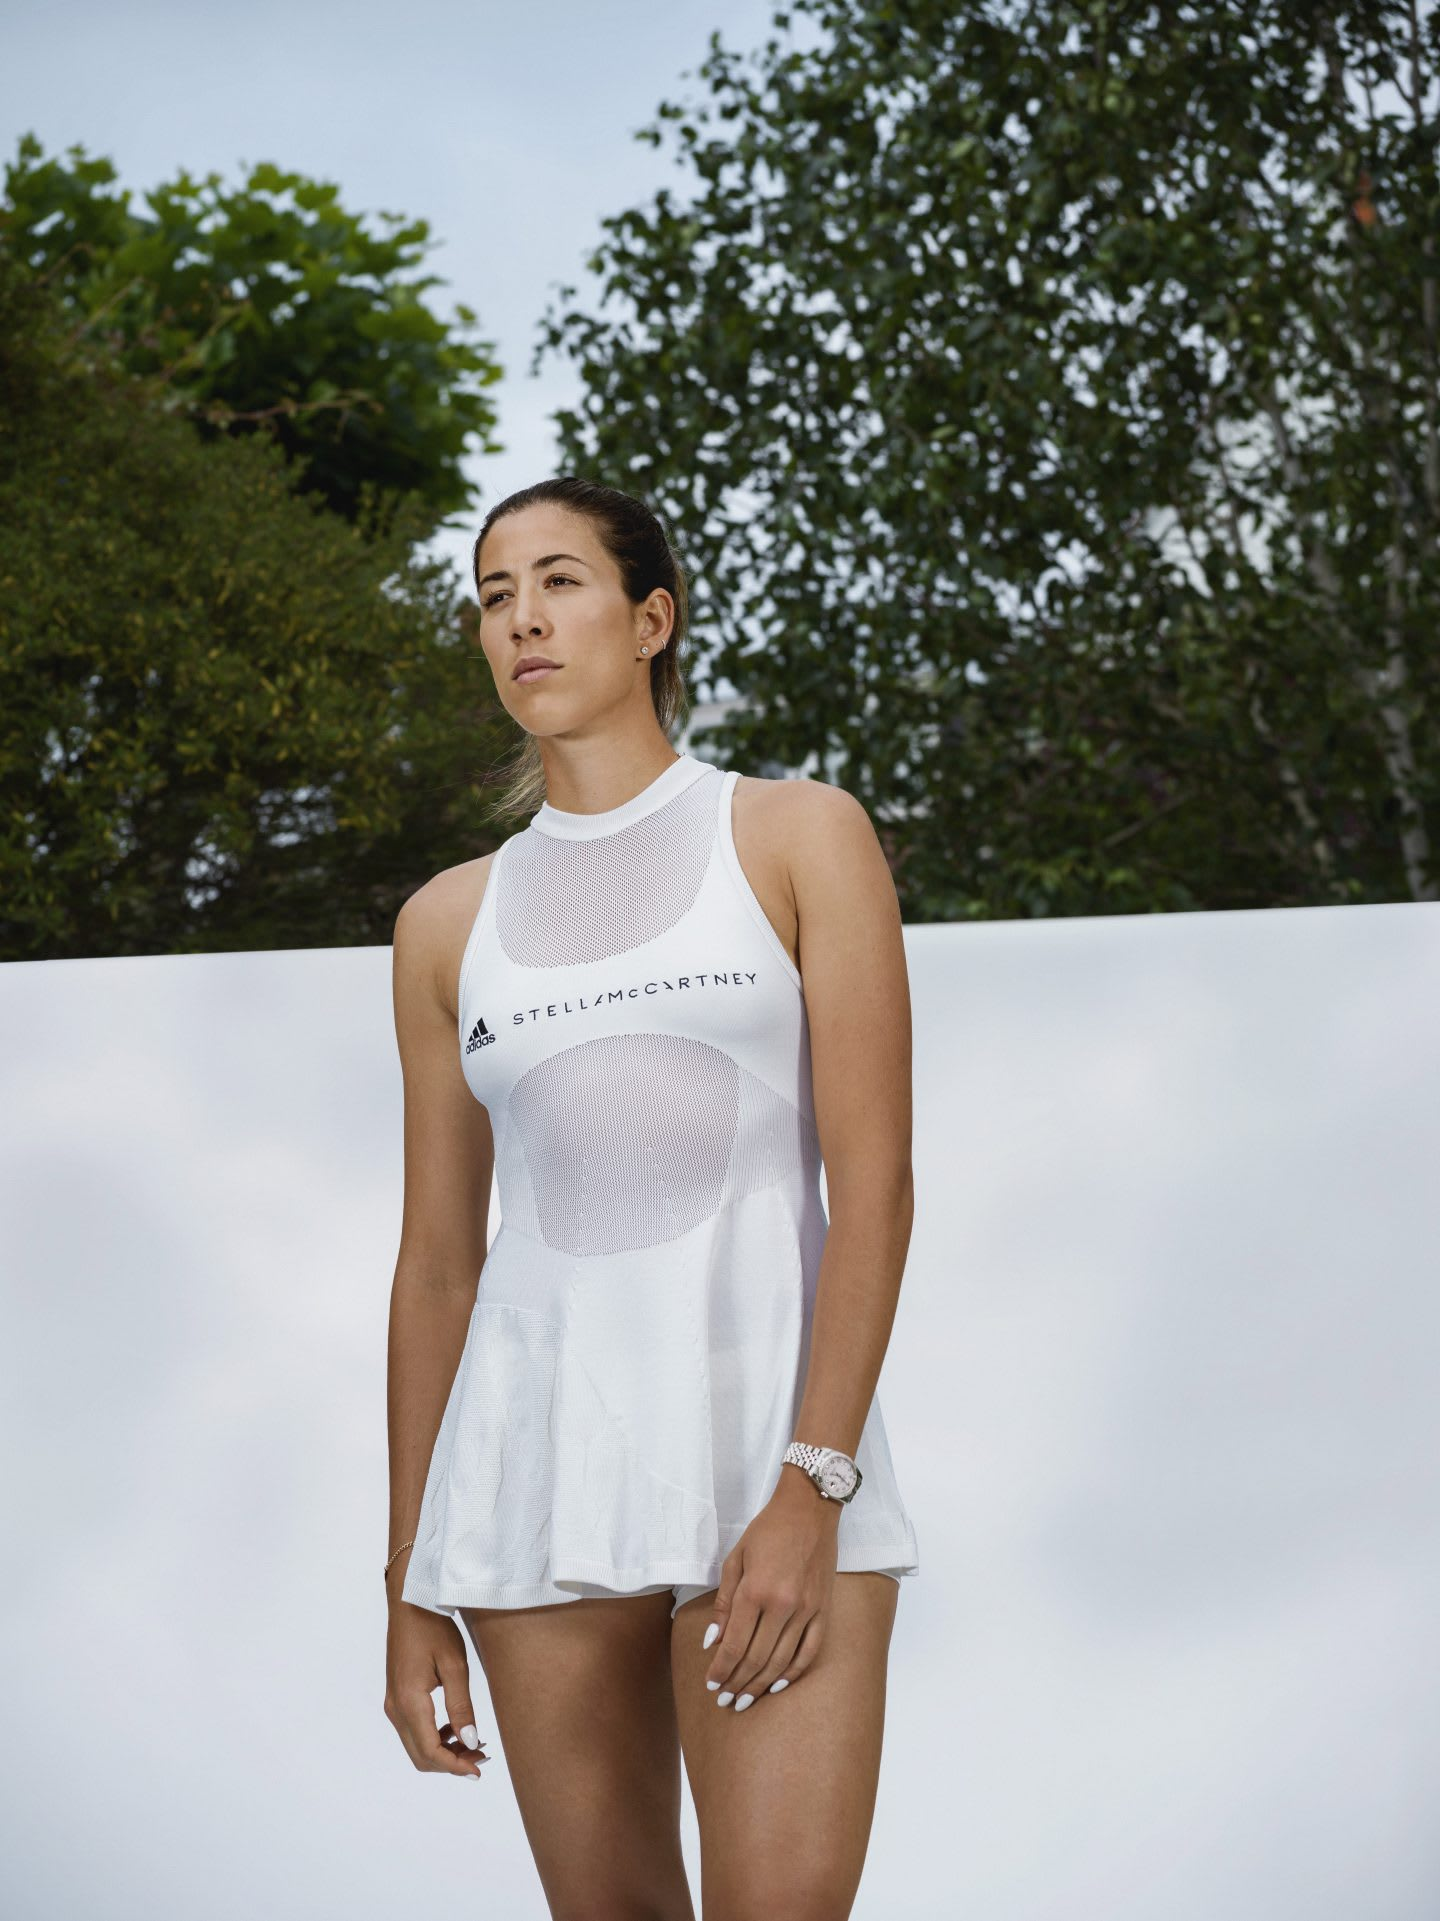 A woman wearing a white tennis dress by adidas Stella McCartney. plastic waste, Stella McCartney, adidas, bionic tennis dress, sustainability